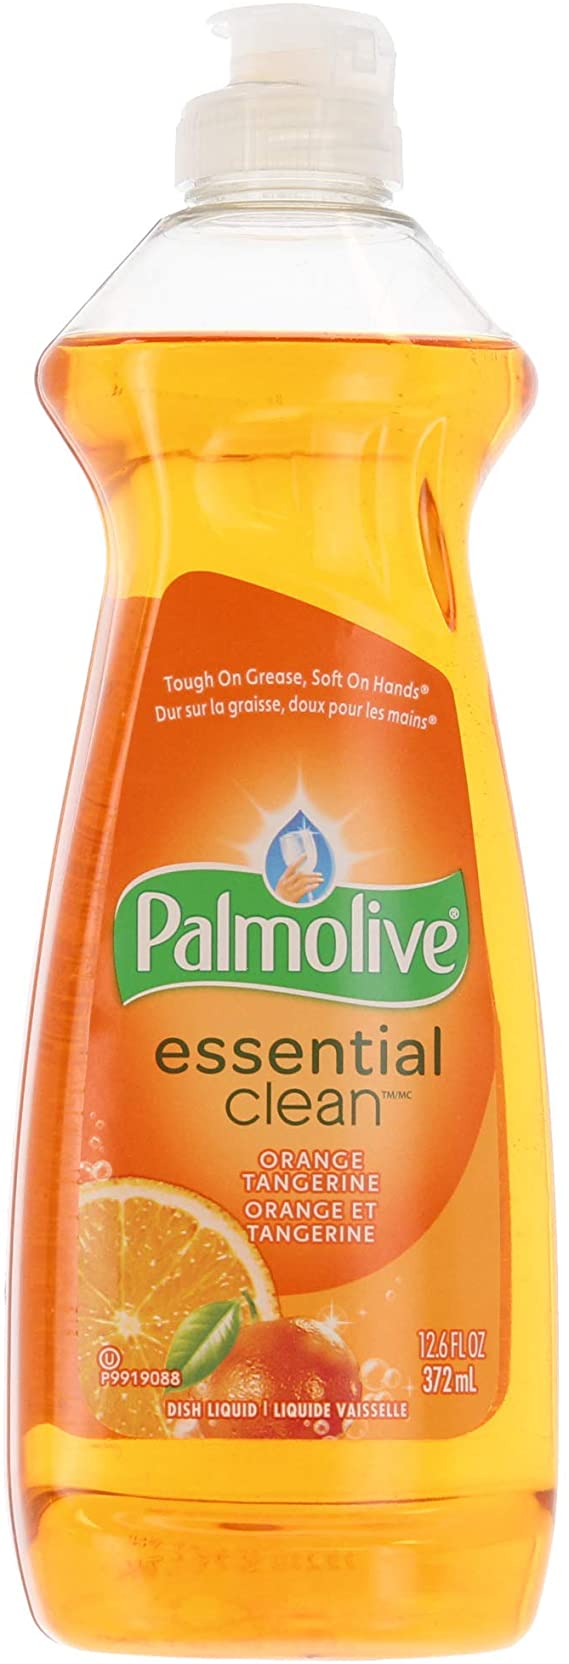 Palmolive Orange Dish Liquid Cleaner - 372 ml (Pack of 17)